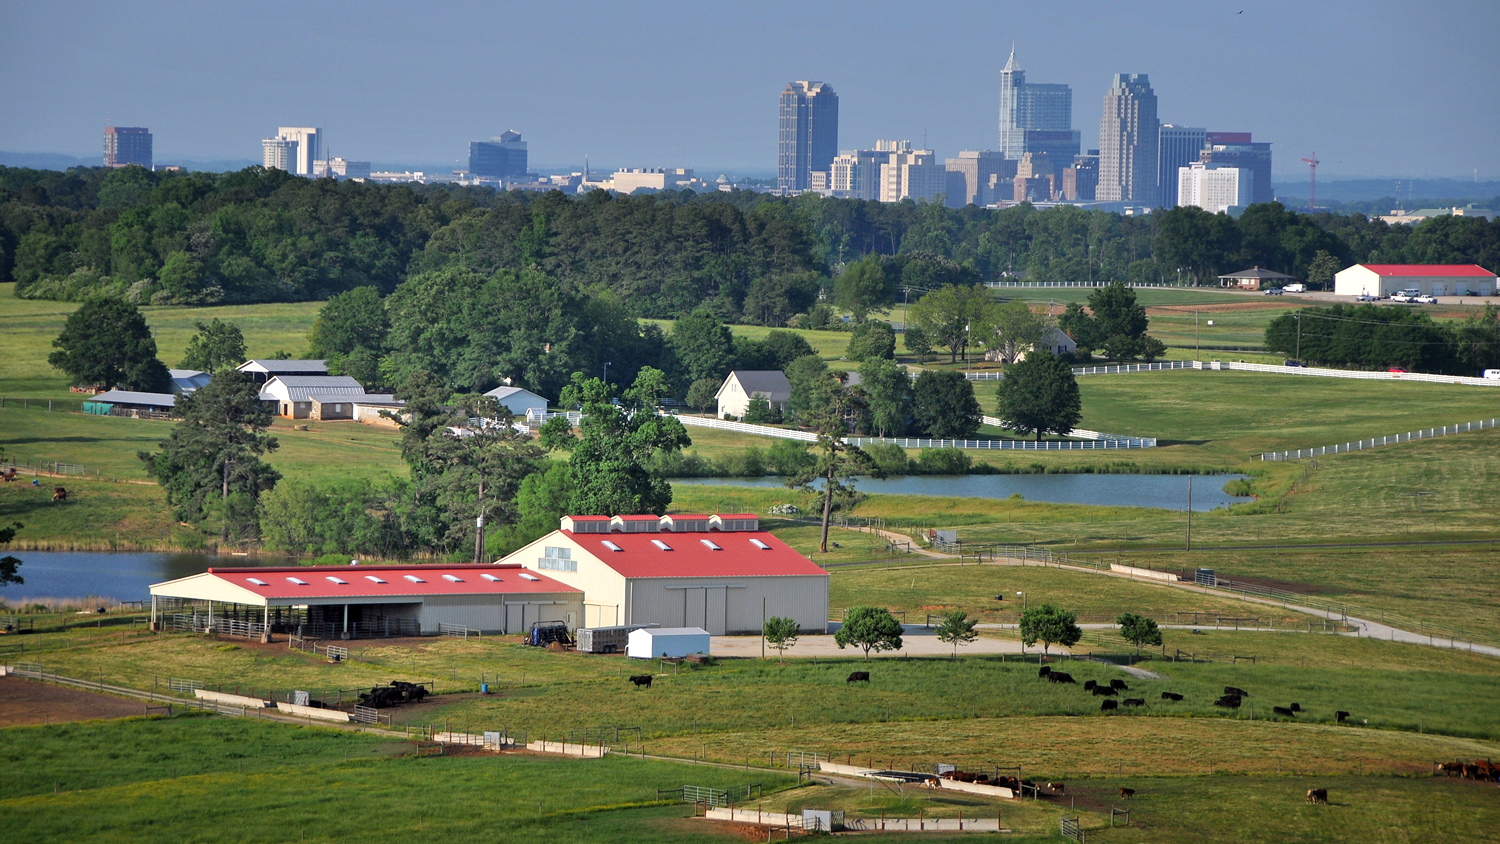 Lake Wheeler farm in foreground, with Raleigh skyline in background